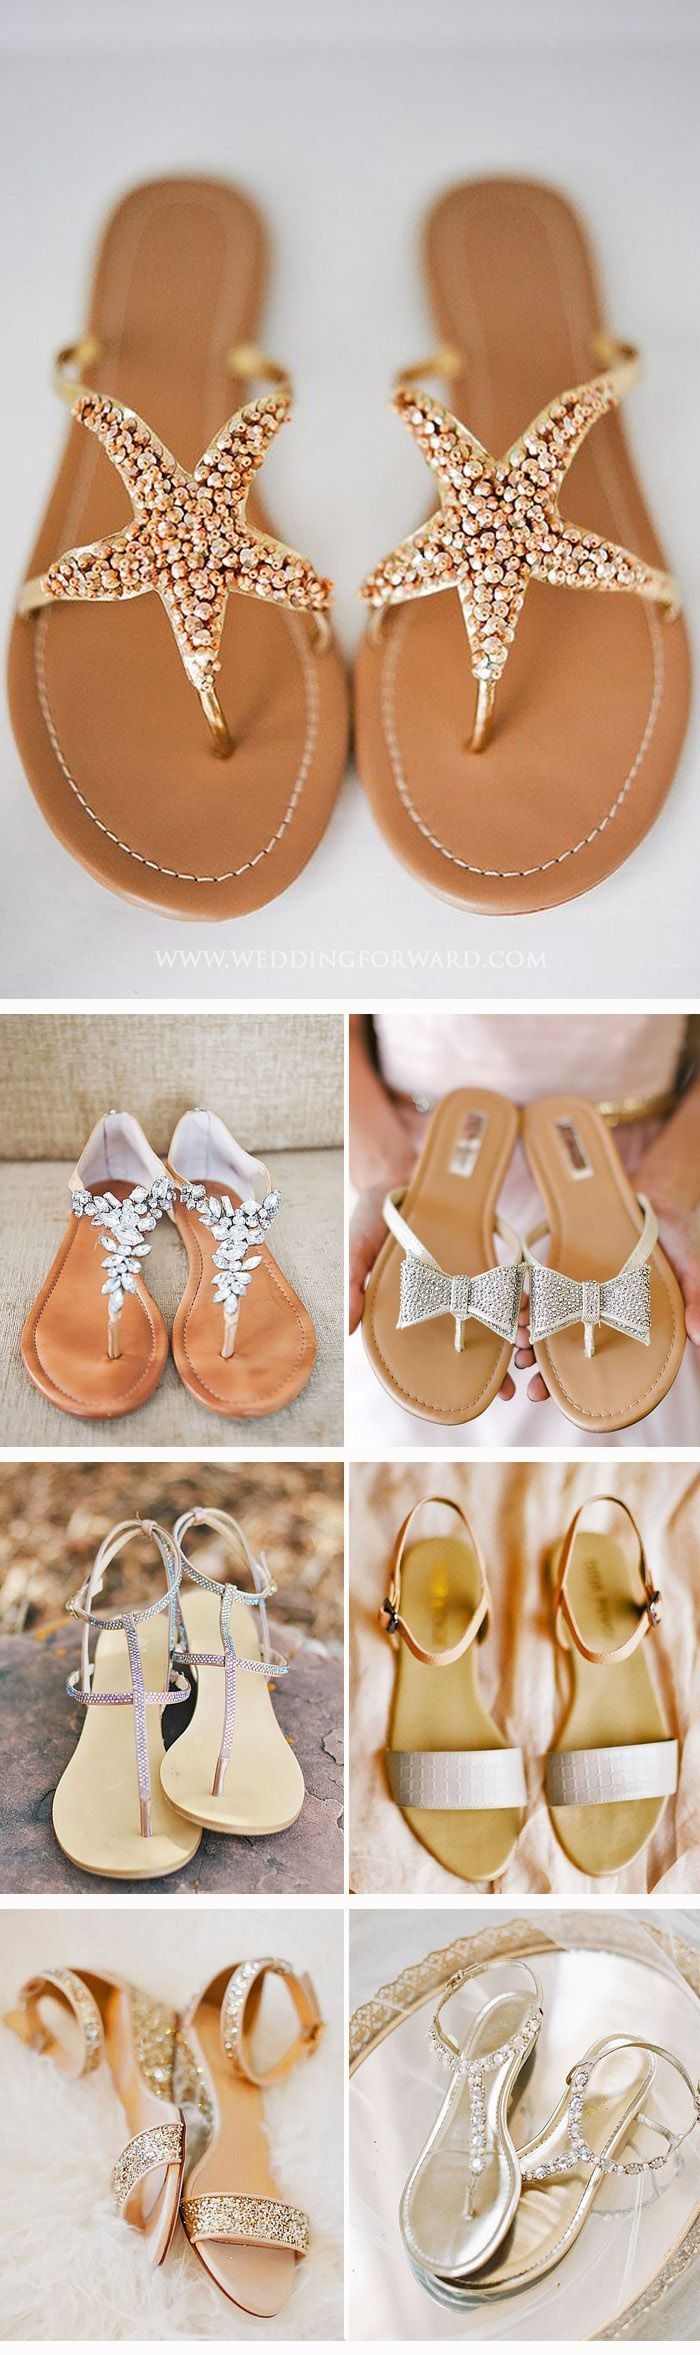 24 Wedding Sandals You'll Want To Wear Again ❤ Perfect for summer beach wedding, flat, comfortable - wedding sandals have many advantages. See more: http://www.weddingforward.com/wedding-sandals/ #weddings #shoes